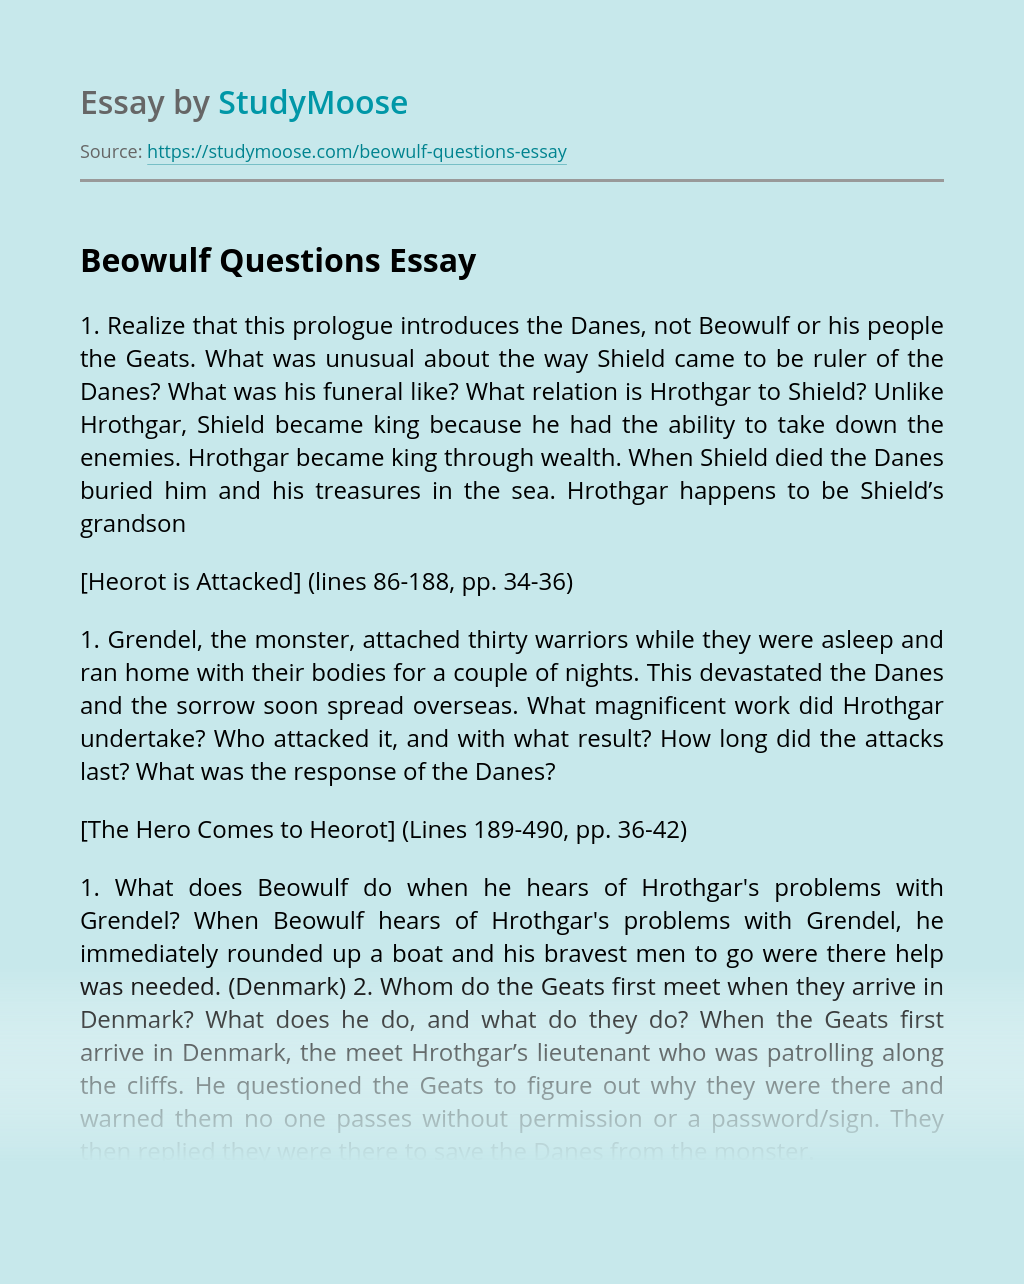 Beowulf Questions